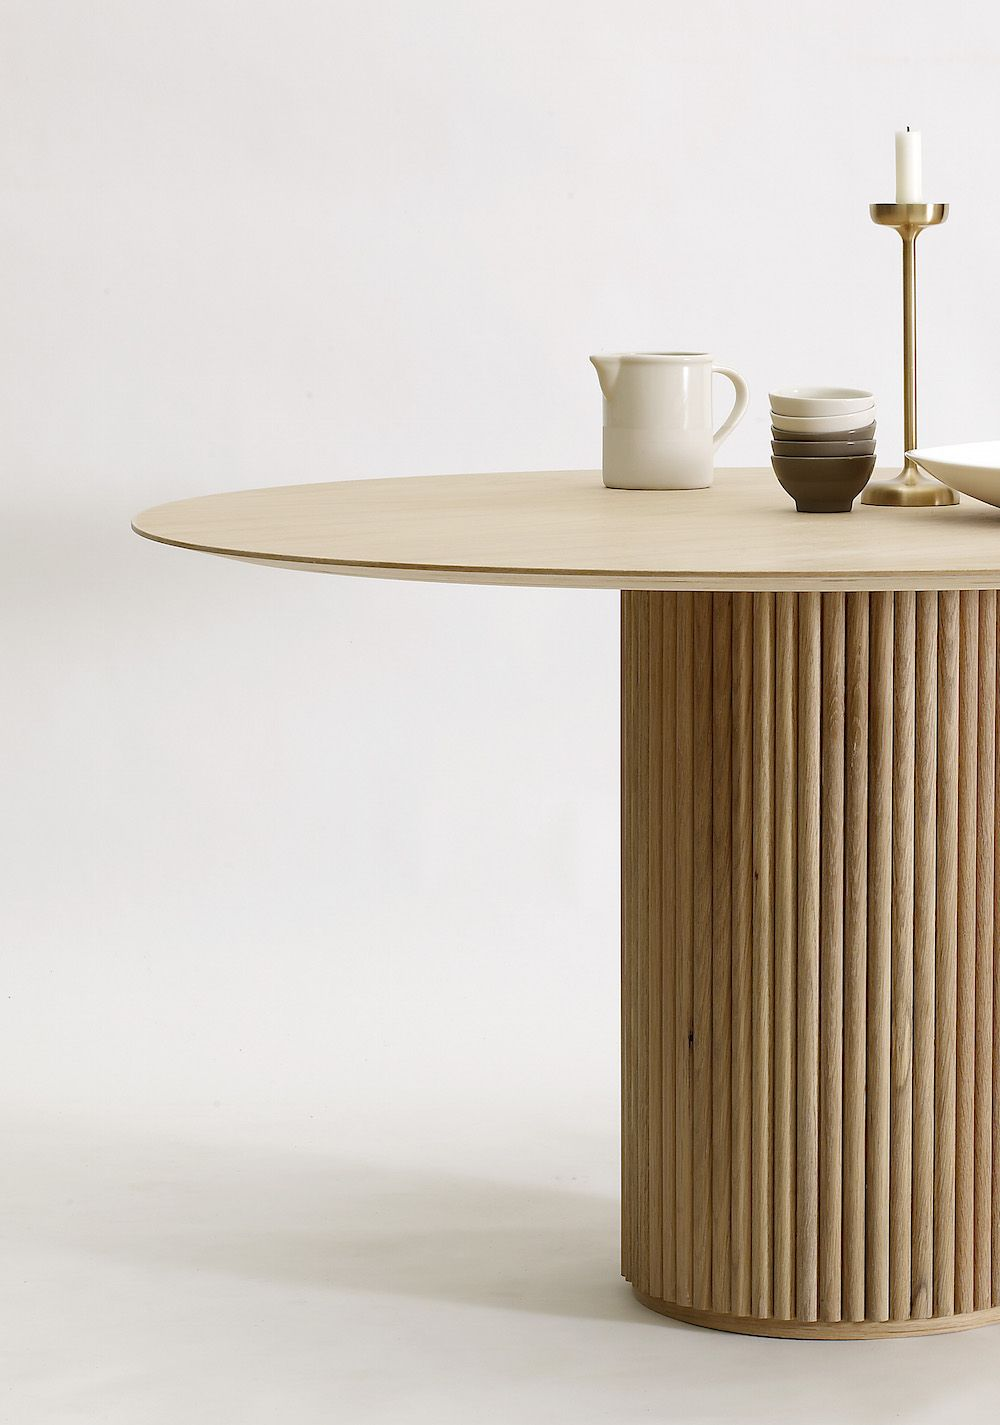 Pin by Thom Ortiz | Design on Surface | Pinterest | Tables ...